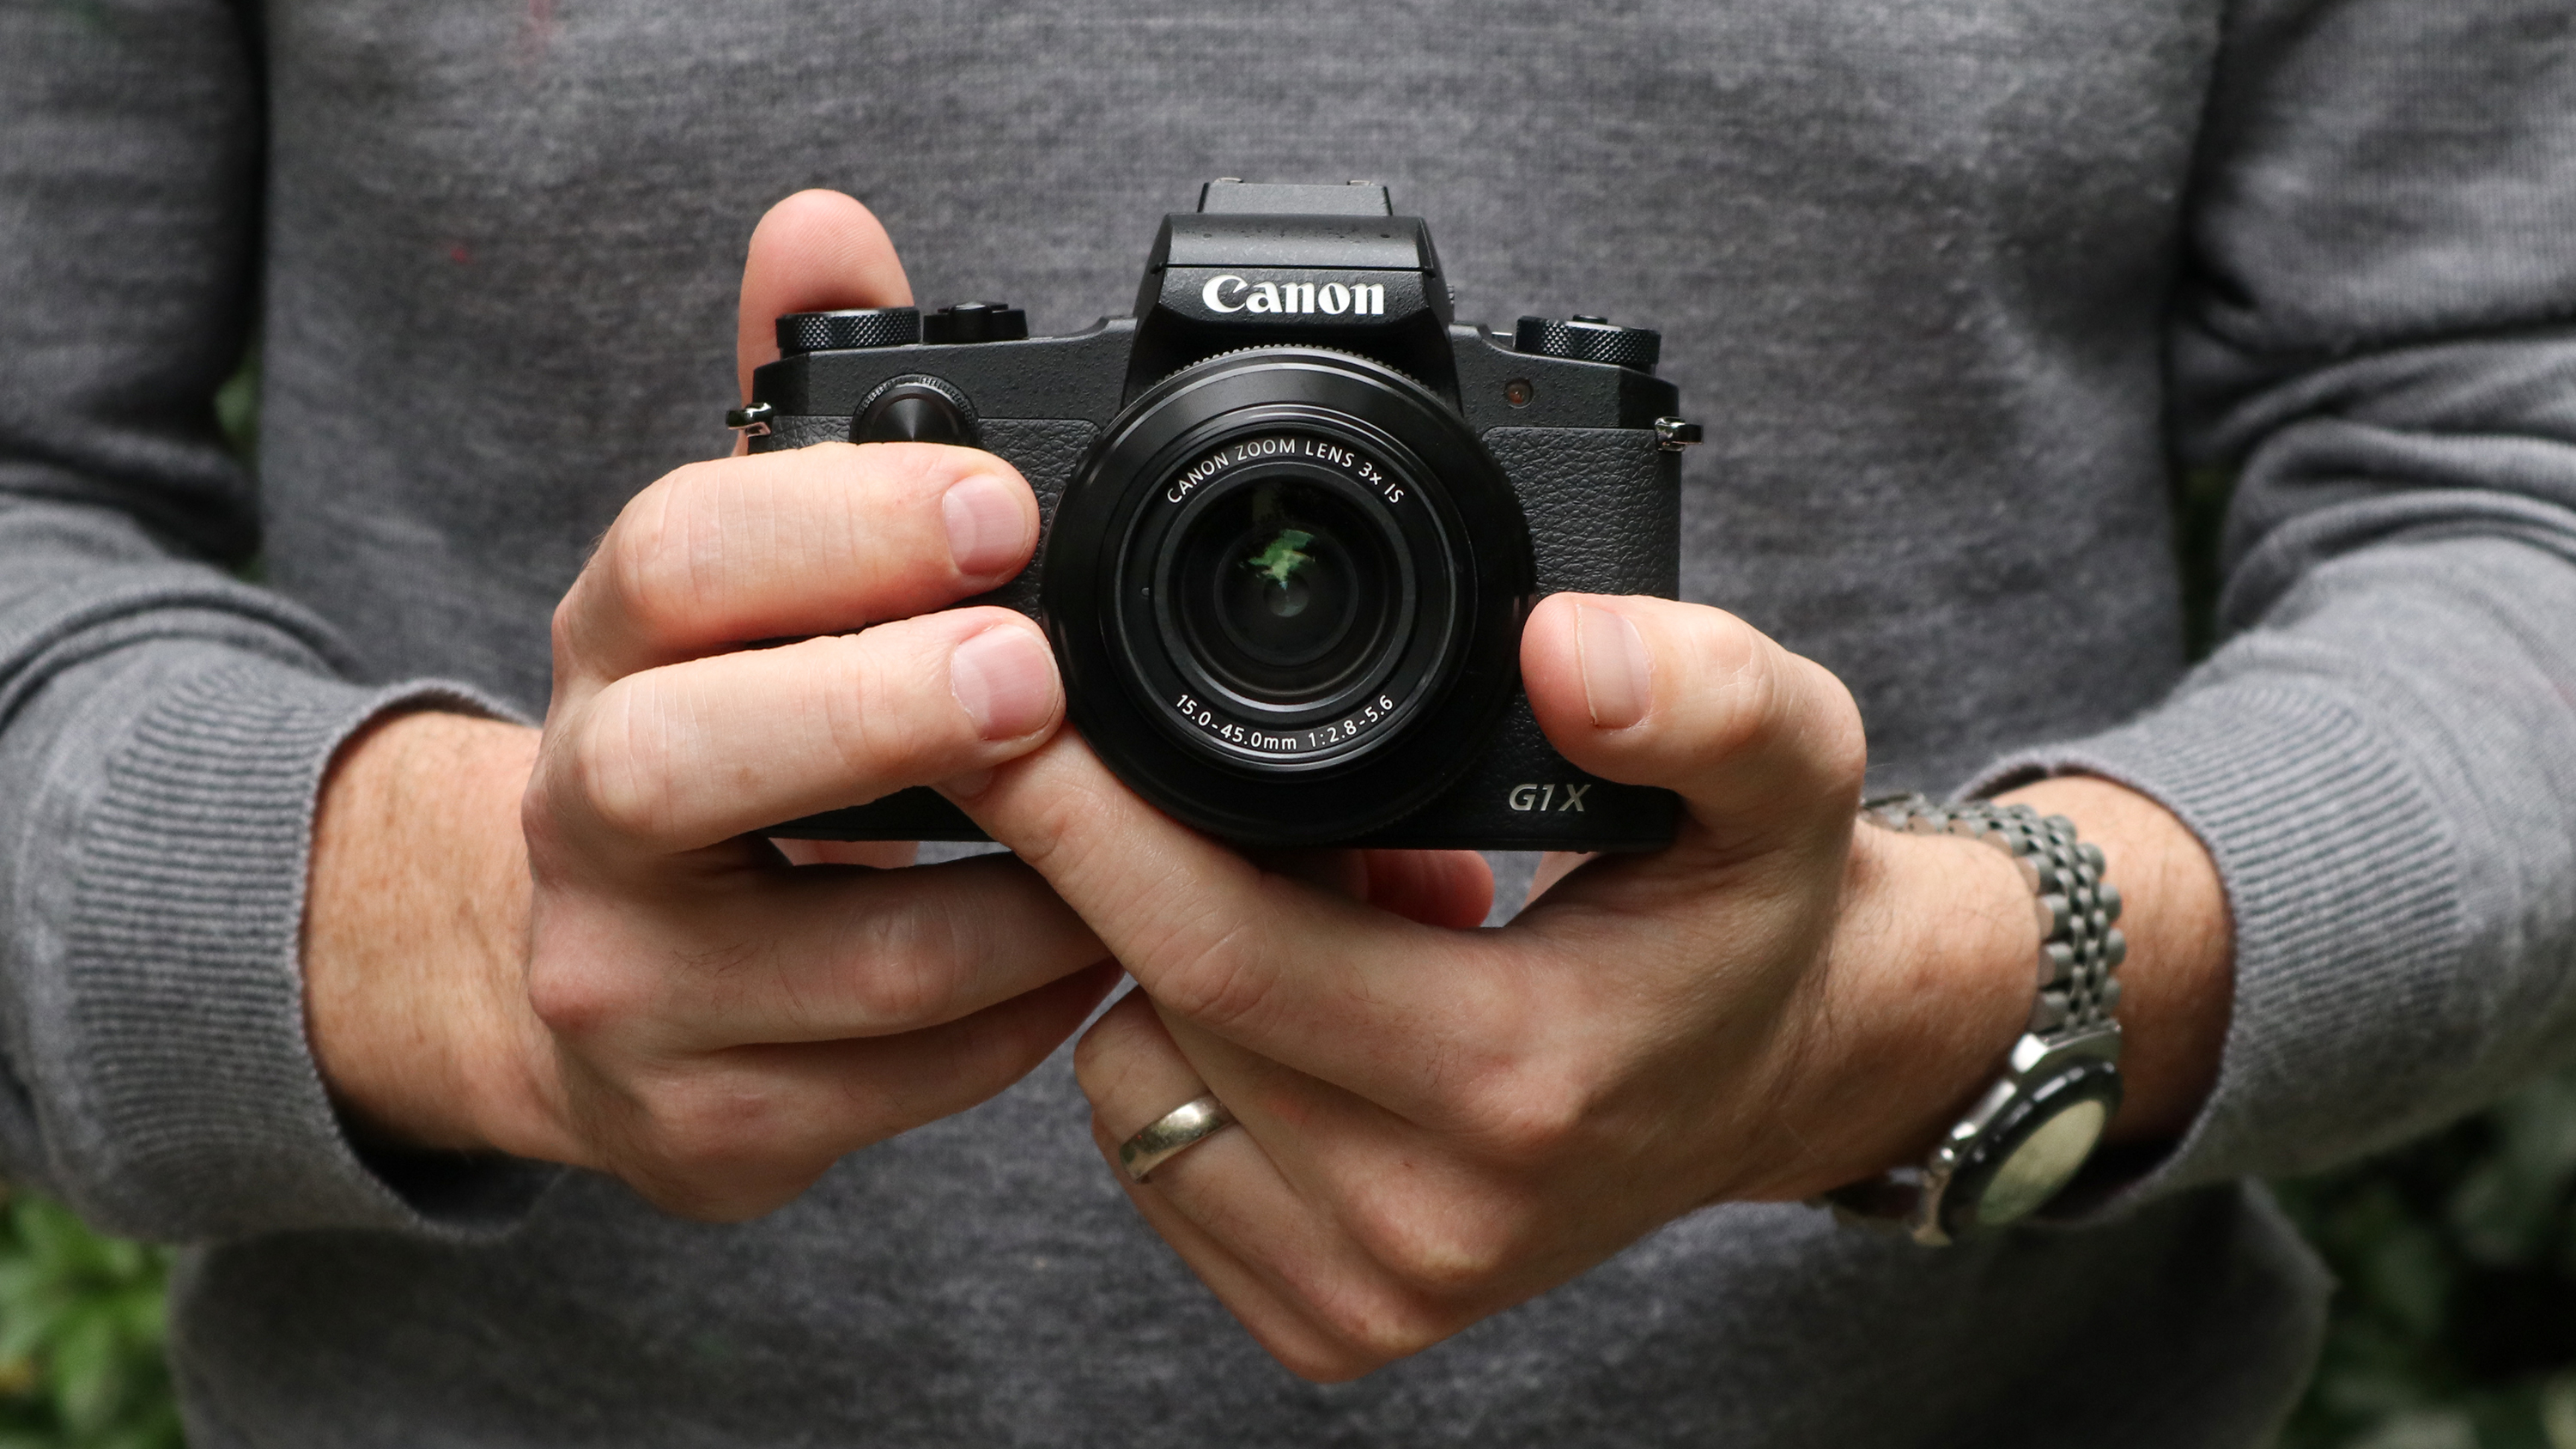 Best compact camera: Canon PowerShot G1 X Mark III